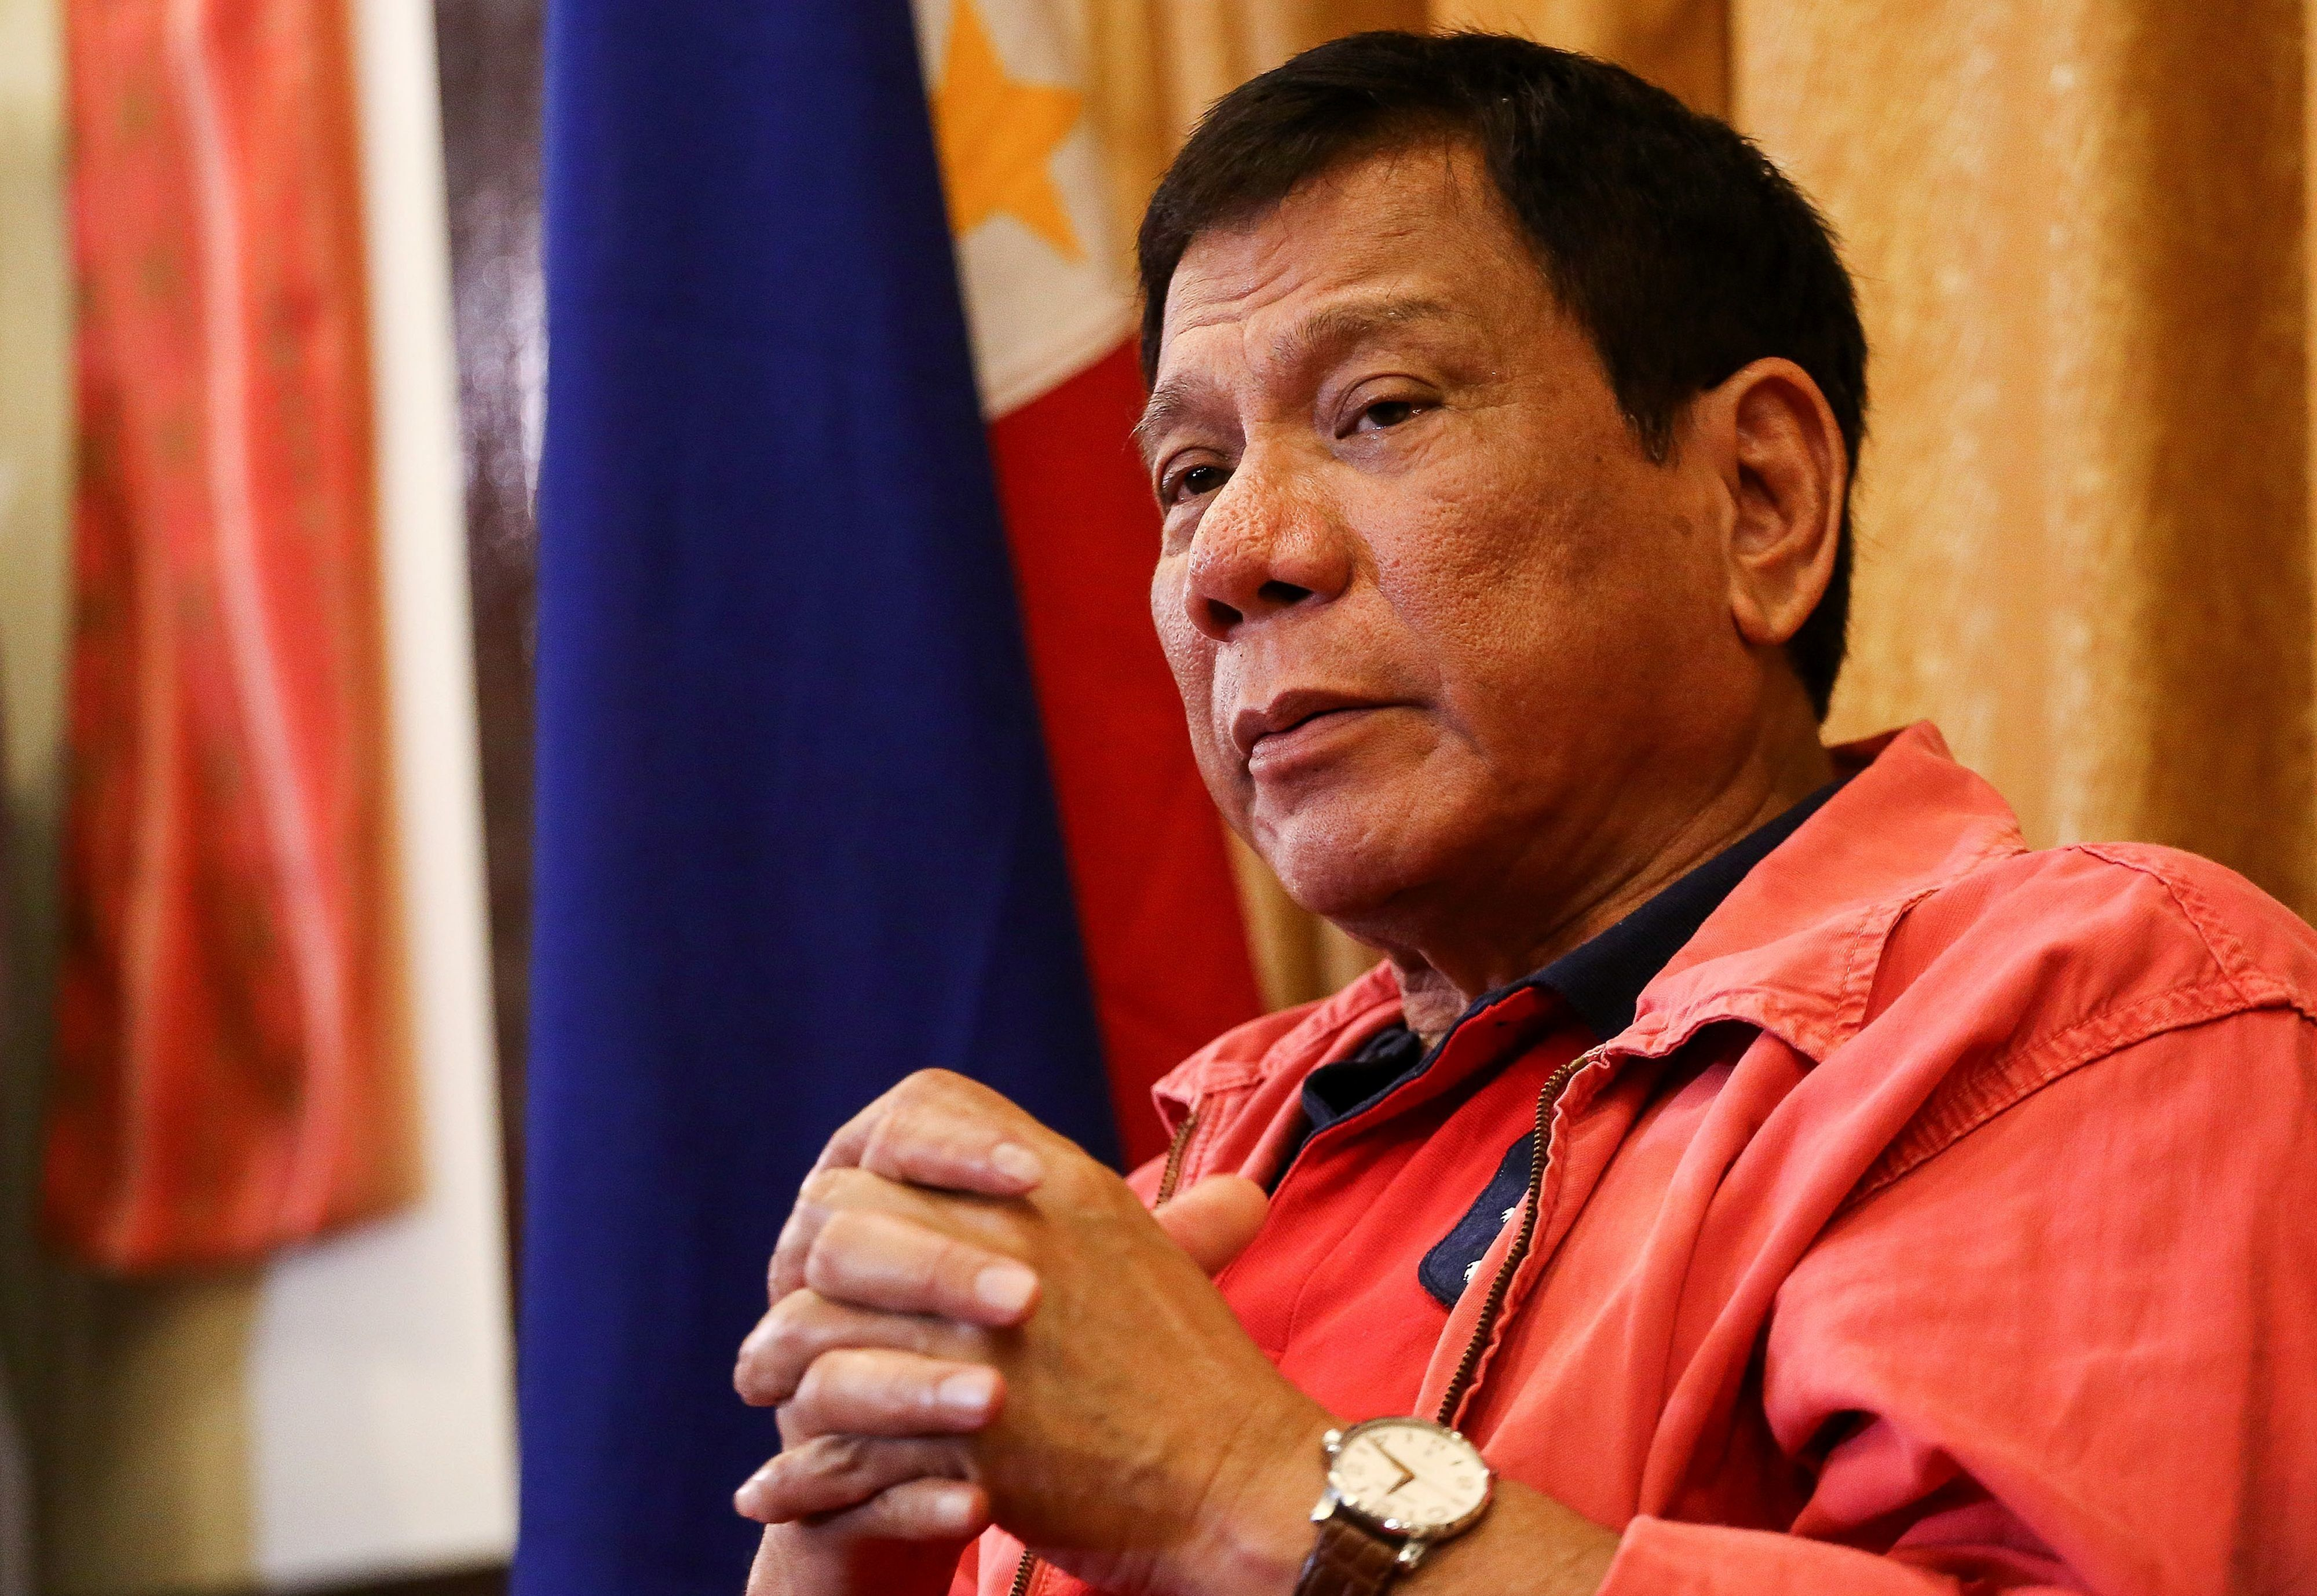 Philippines' president-elect Rodrigo Duterte speaks during a press conference in Davao City, in southern island of Mindanao on May 26, 2016.  Explosive incoming Philippine president Rodrigo Duterte has launched a series of obscenity-filled attacks on the Catholic Church, branding local bishops corrupt 'sons of whores' who are to be blamed for the nation's fast-growing population. / AFP / MANMAN DEJETO        (Photo credit should read MANMAN DEJETO/AFP/Getty Images)